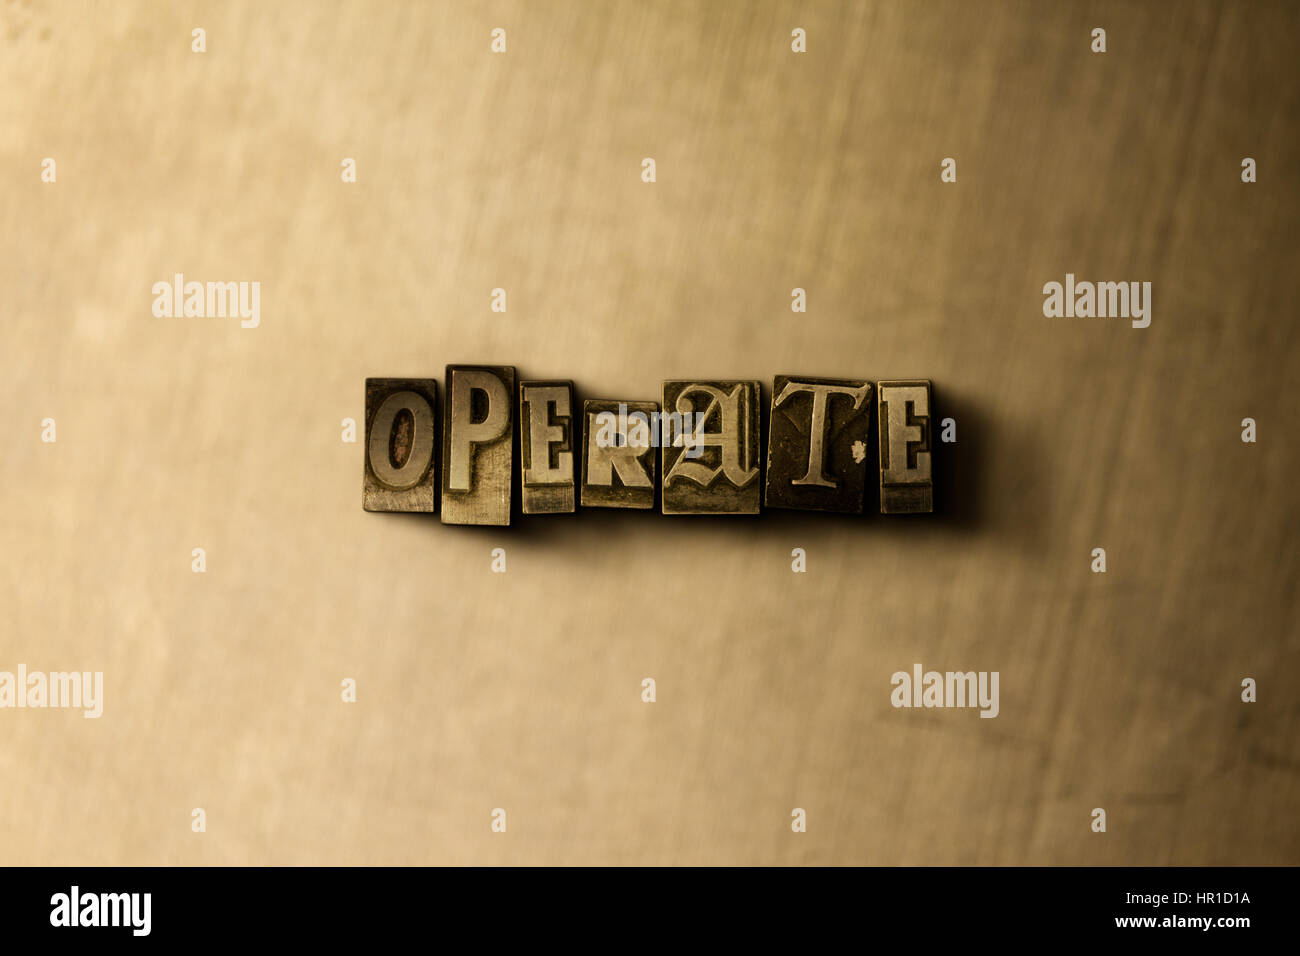 OPERATE - close-up of grungy vintage typeset word on metal backdrop. Royalty free stock - 3D rendered stock image. - Stock Image